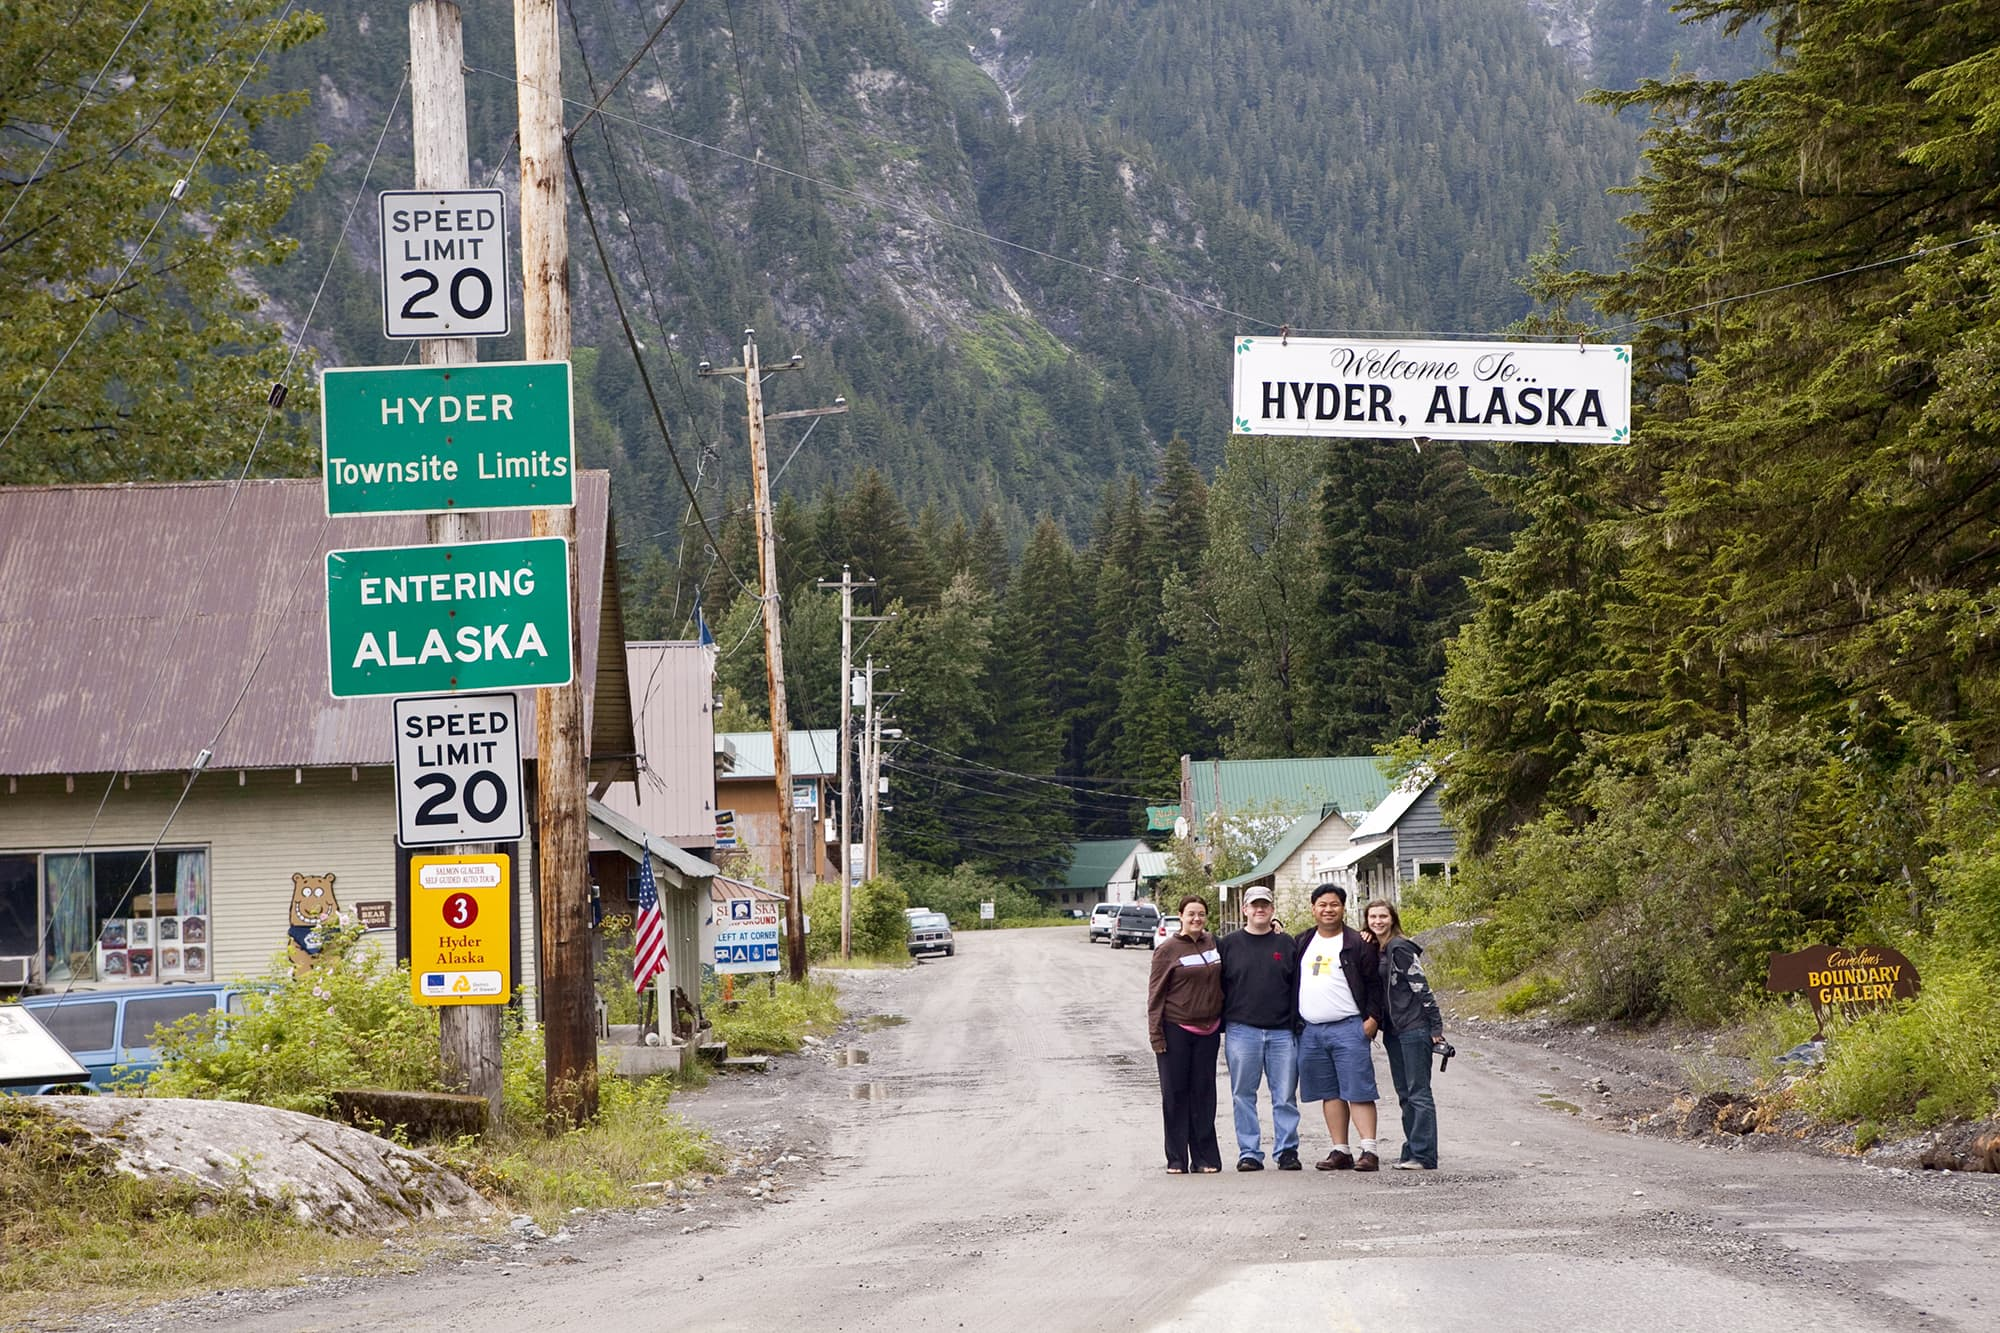 Welcome to Hyder, Alaska